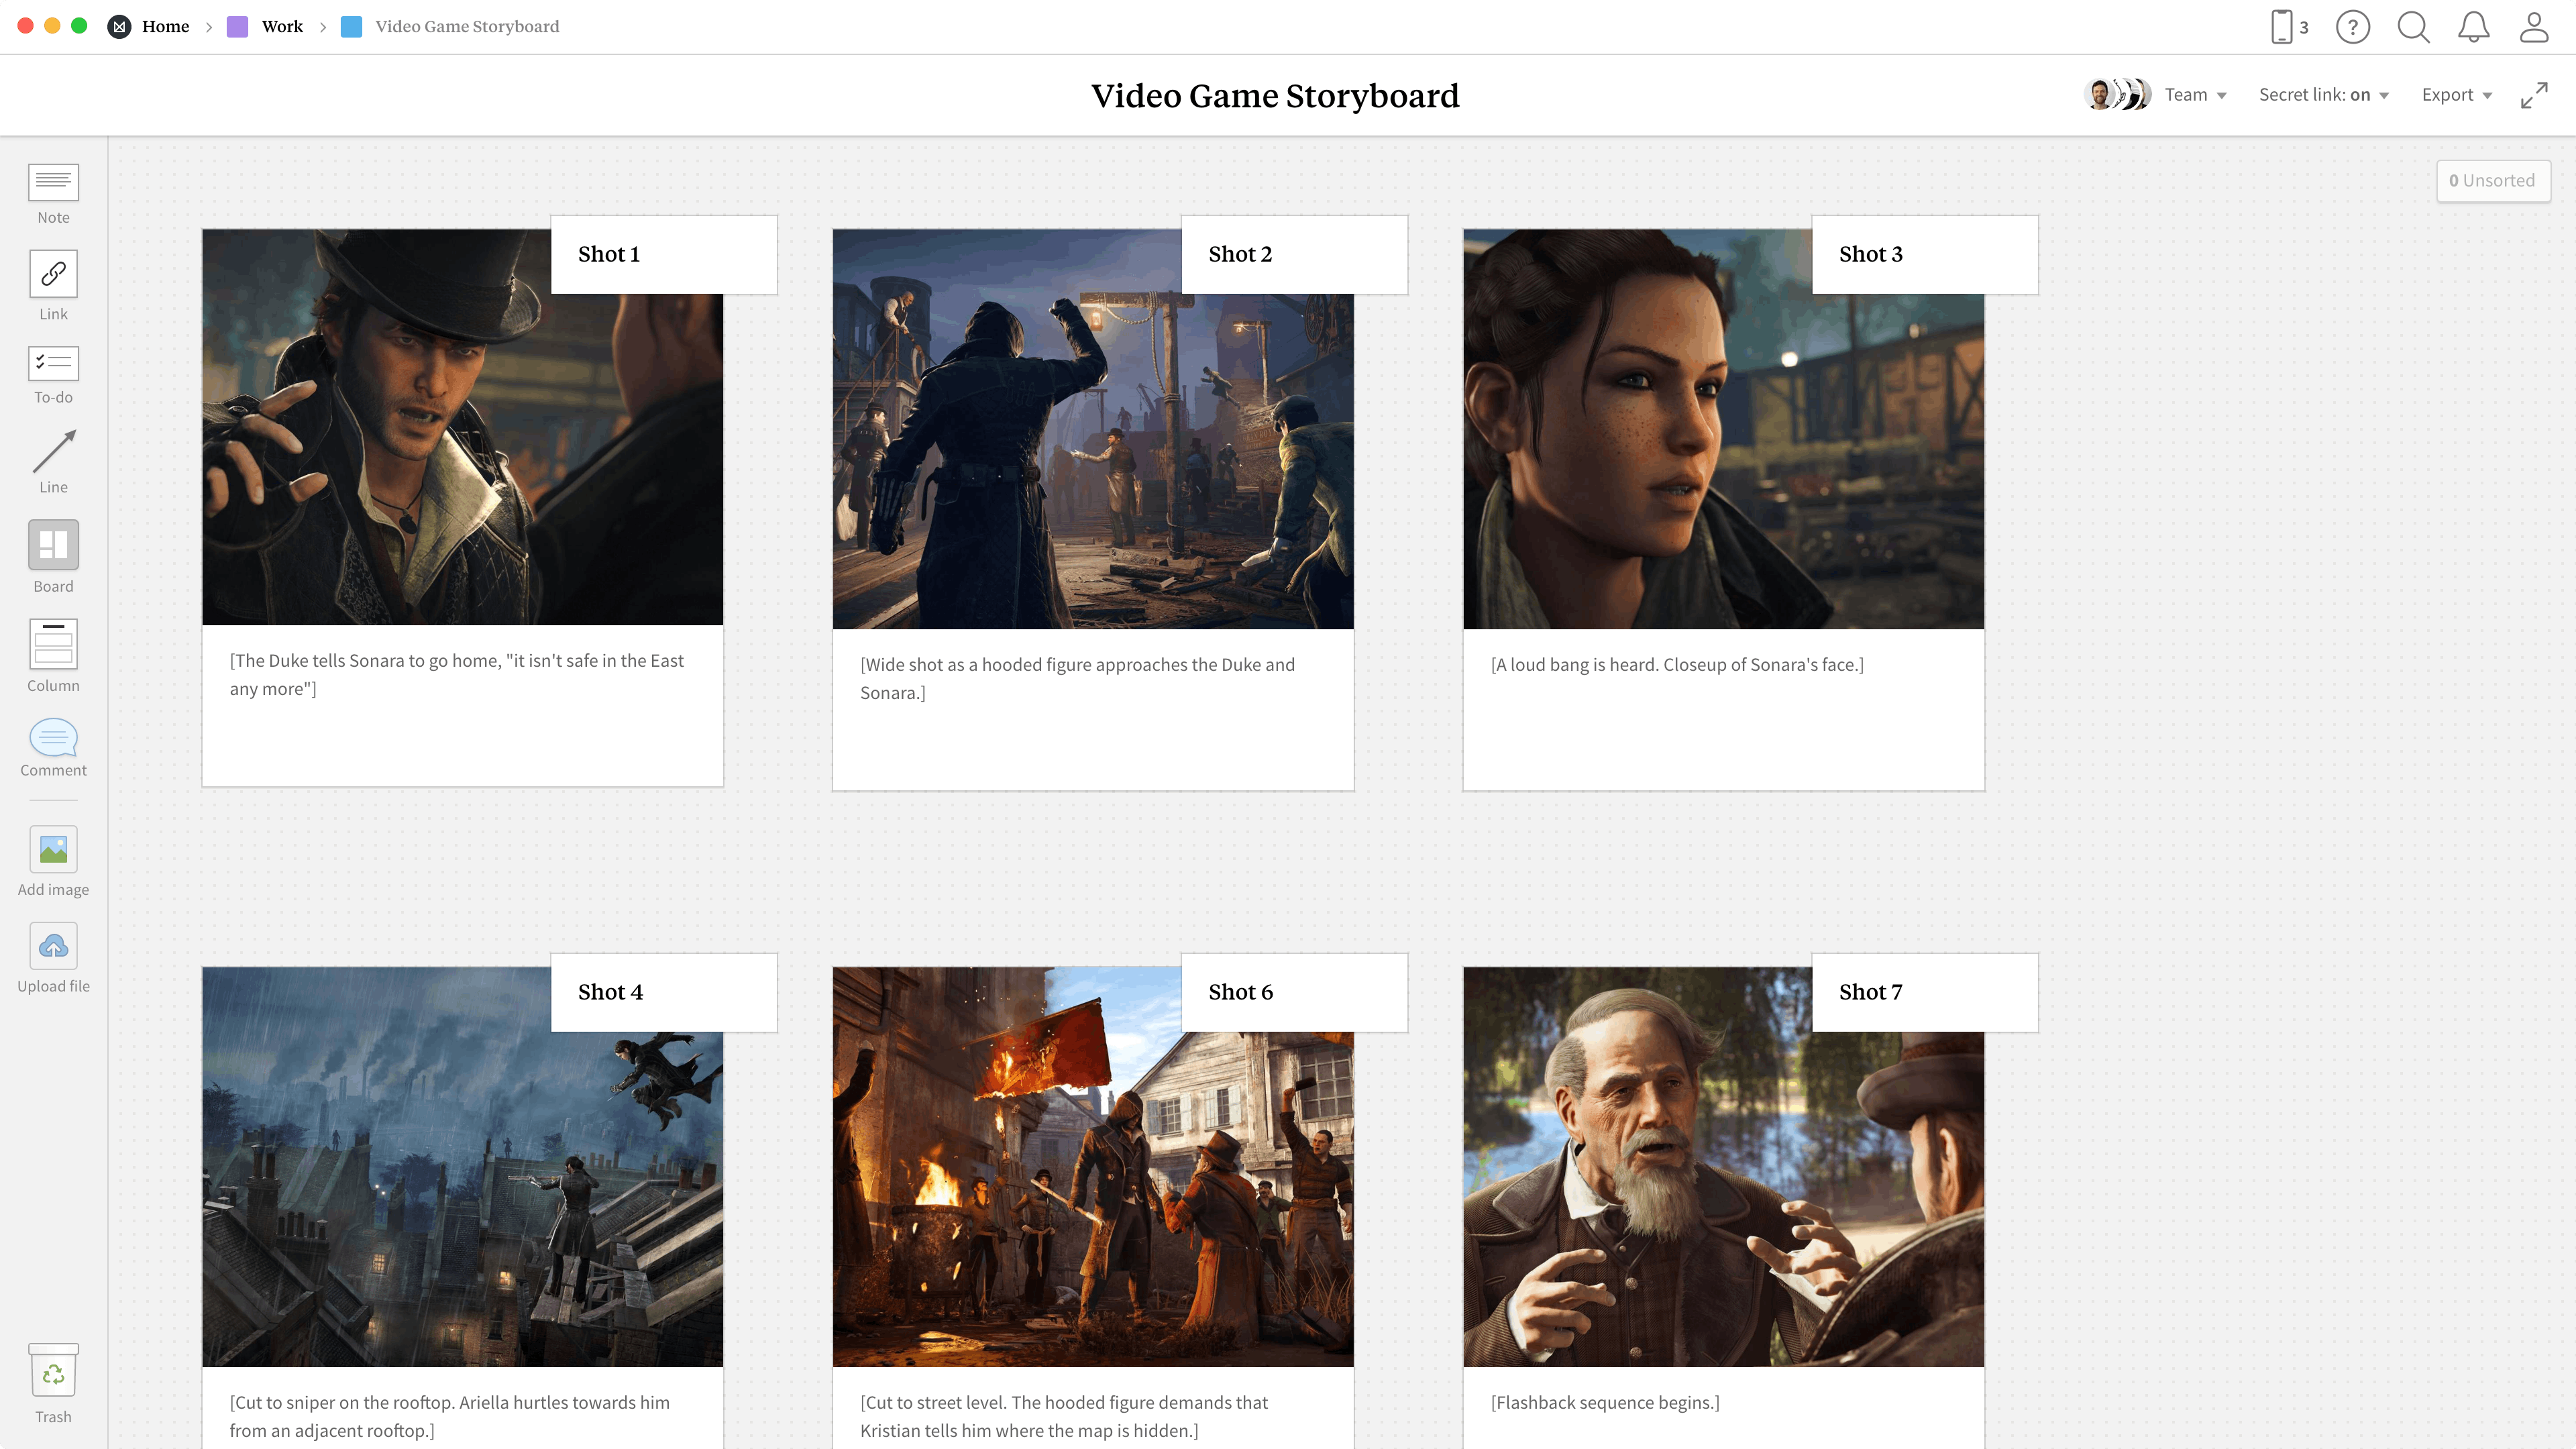 Completed Game Design Storyboard template in Milanote app